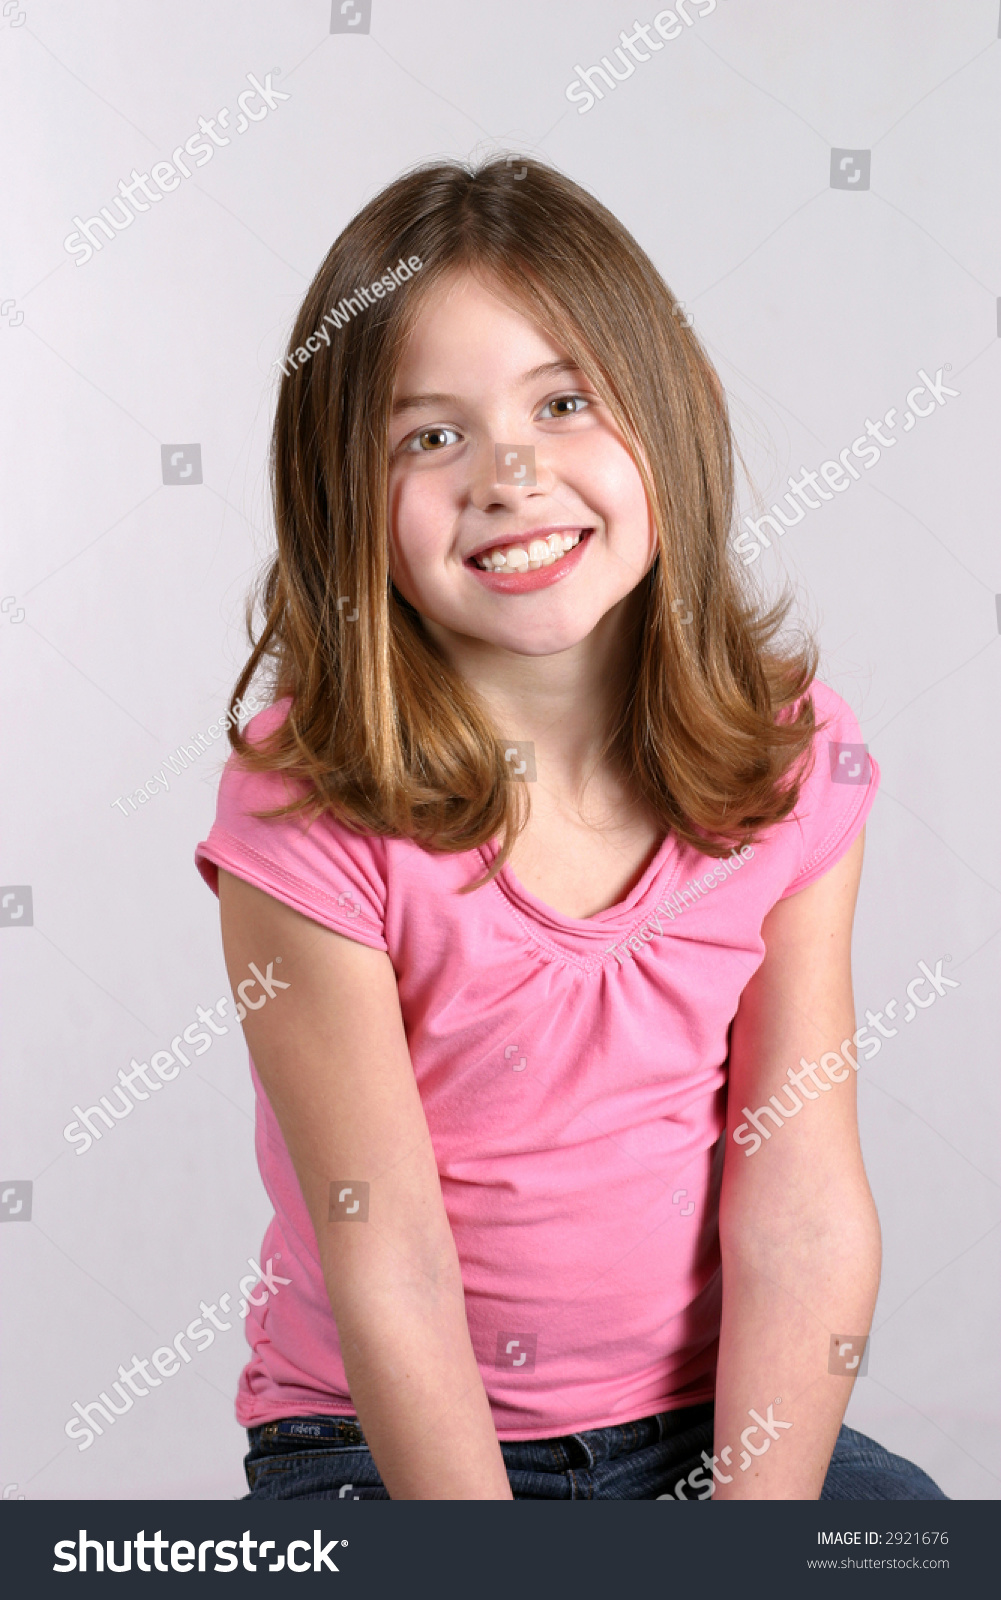 Pre Teen Nn Pics: Pretty Young Preteen Girl Pink Shirt Stock Photo 2921676